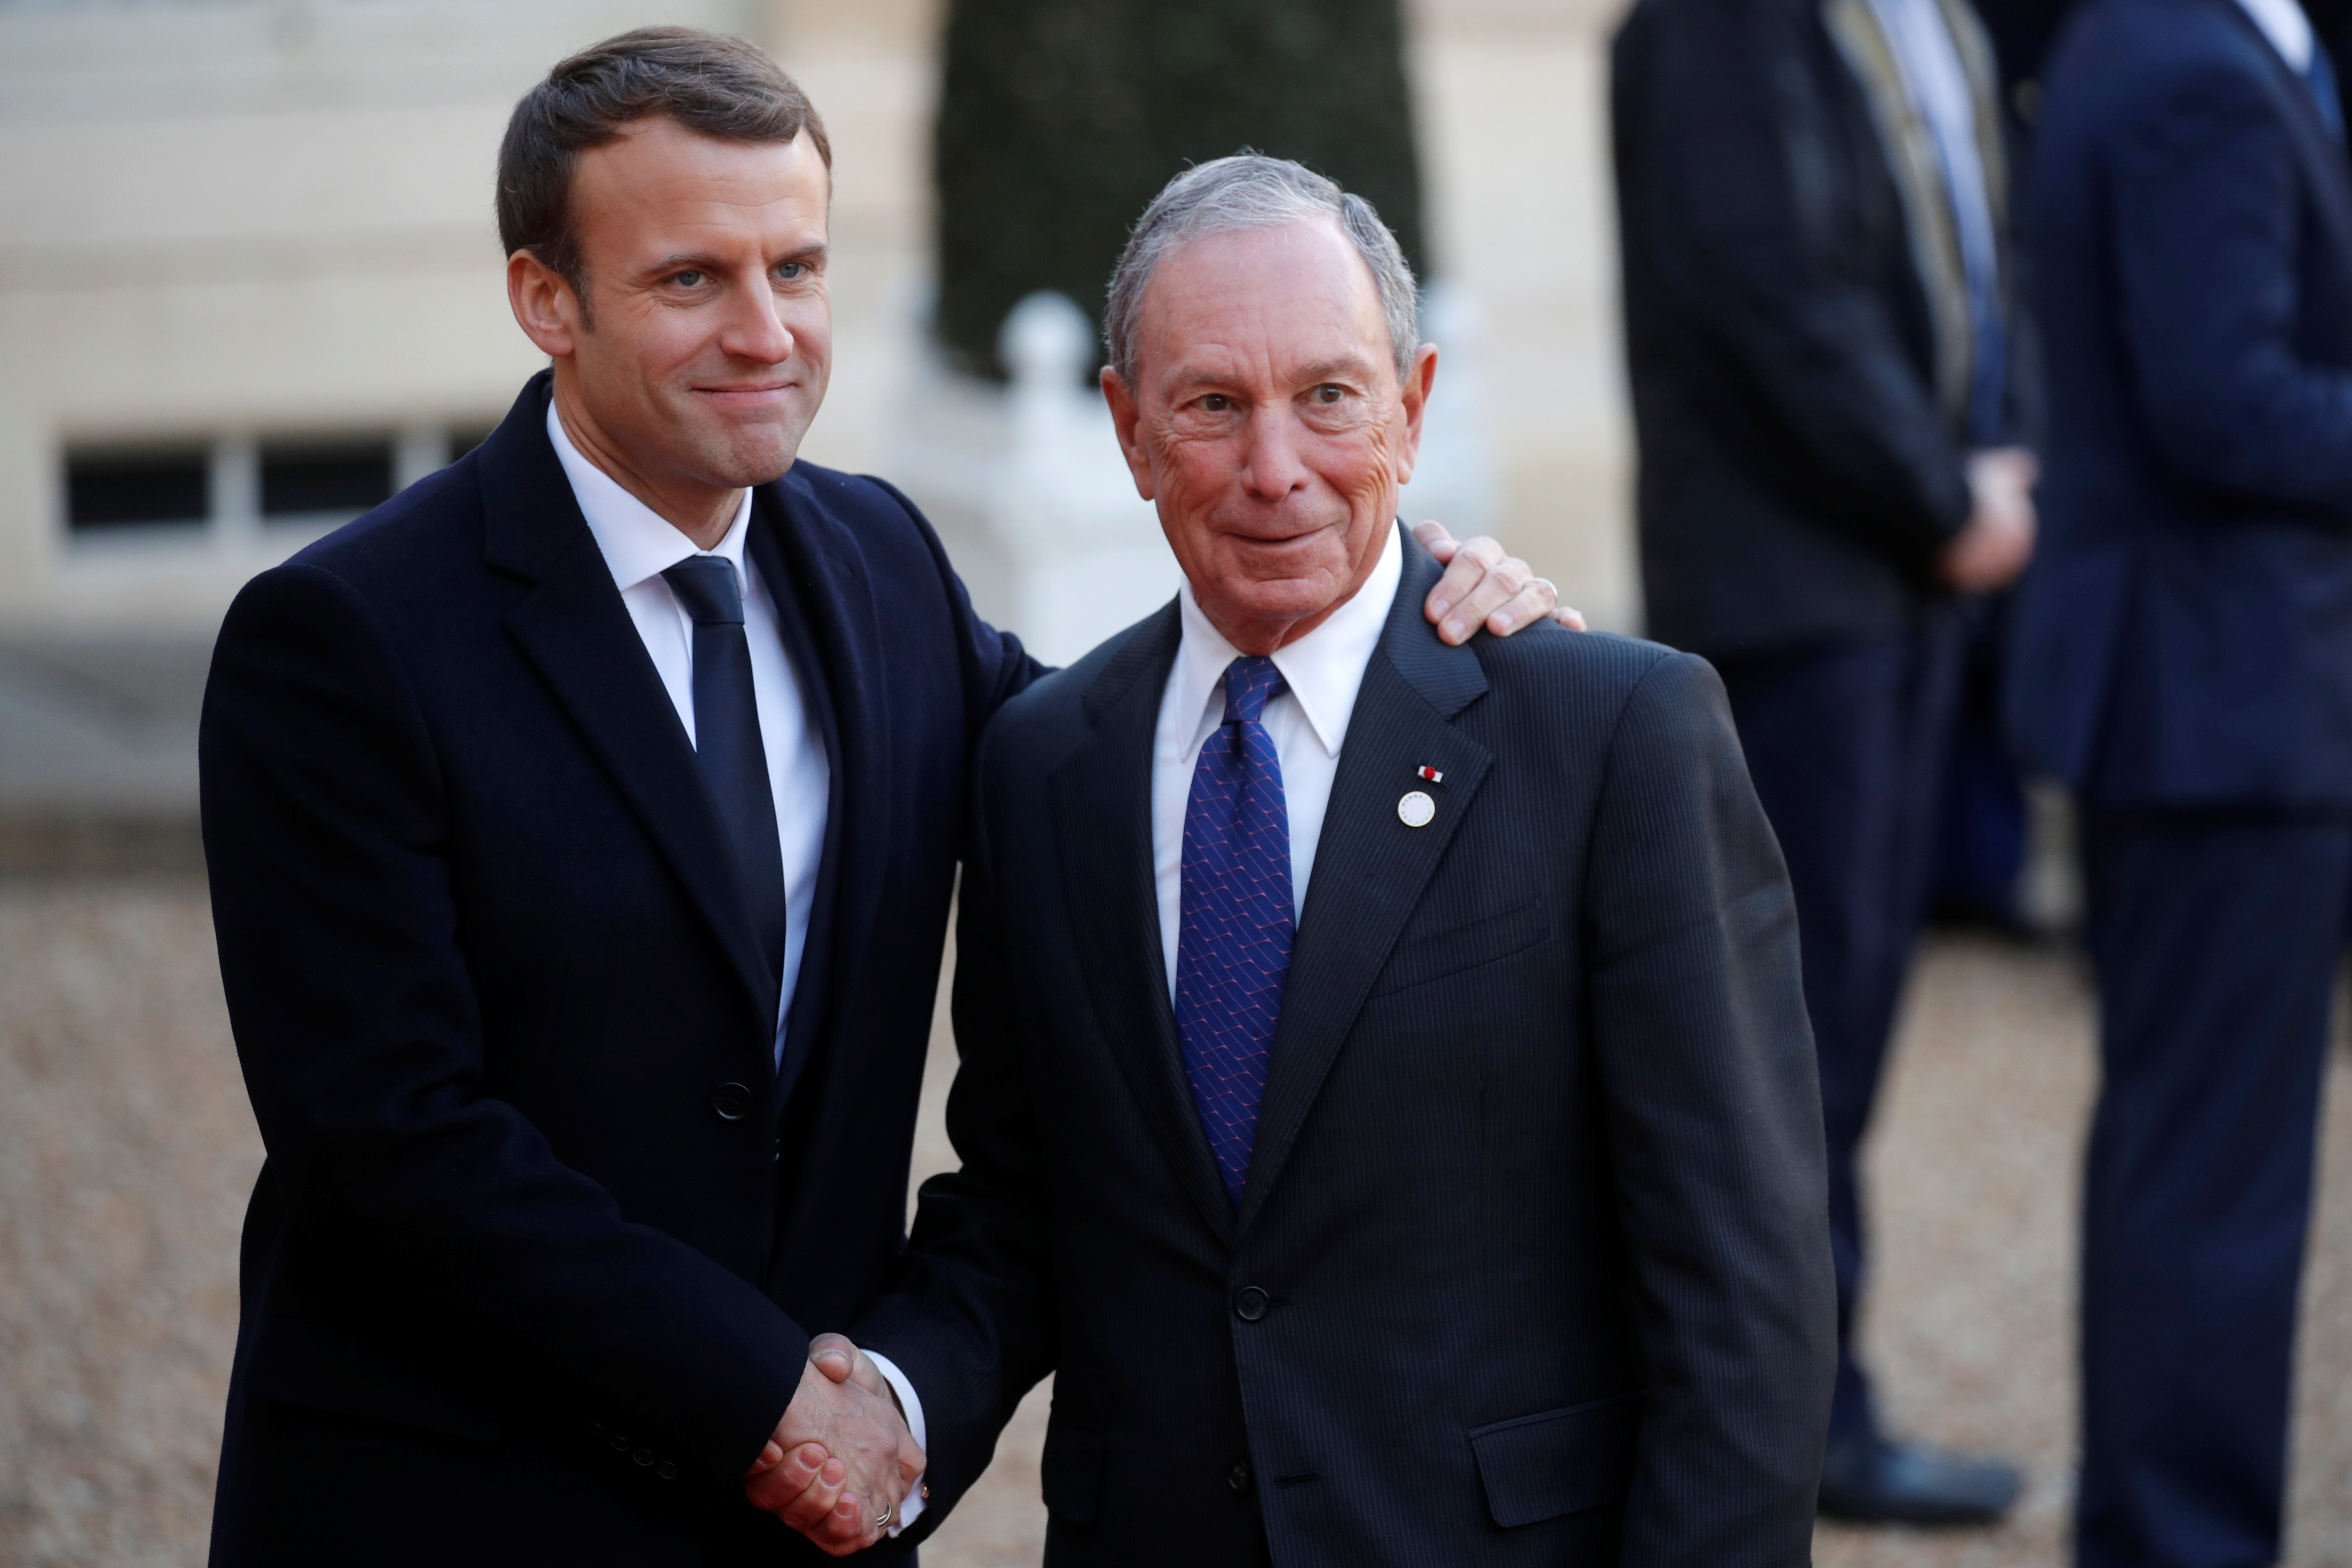 French President Emmanuel Macron welcomes Special envoy to the United Nations for climate change Michael Bloomberg as he arrives for a lunch at the Elysee Palace as part of the One Planet Summit in Paris, France, December 12, 2017. REUTERS/Philippe Wojazer